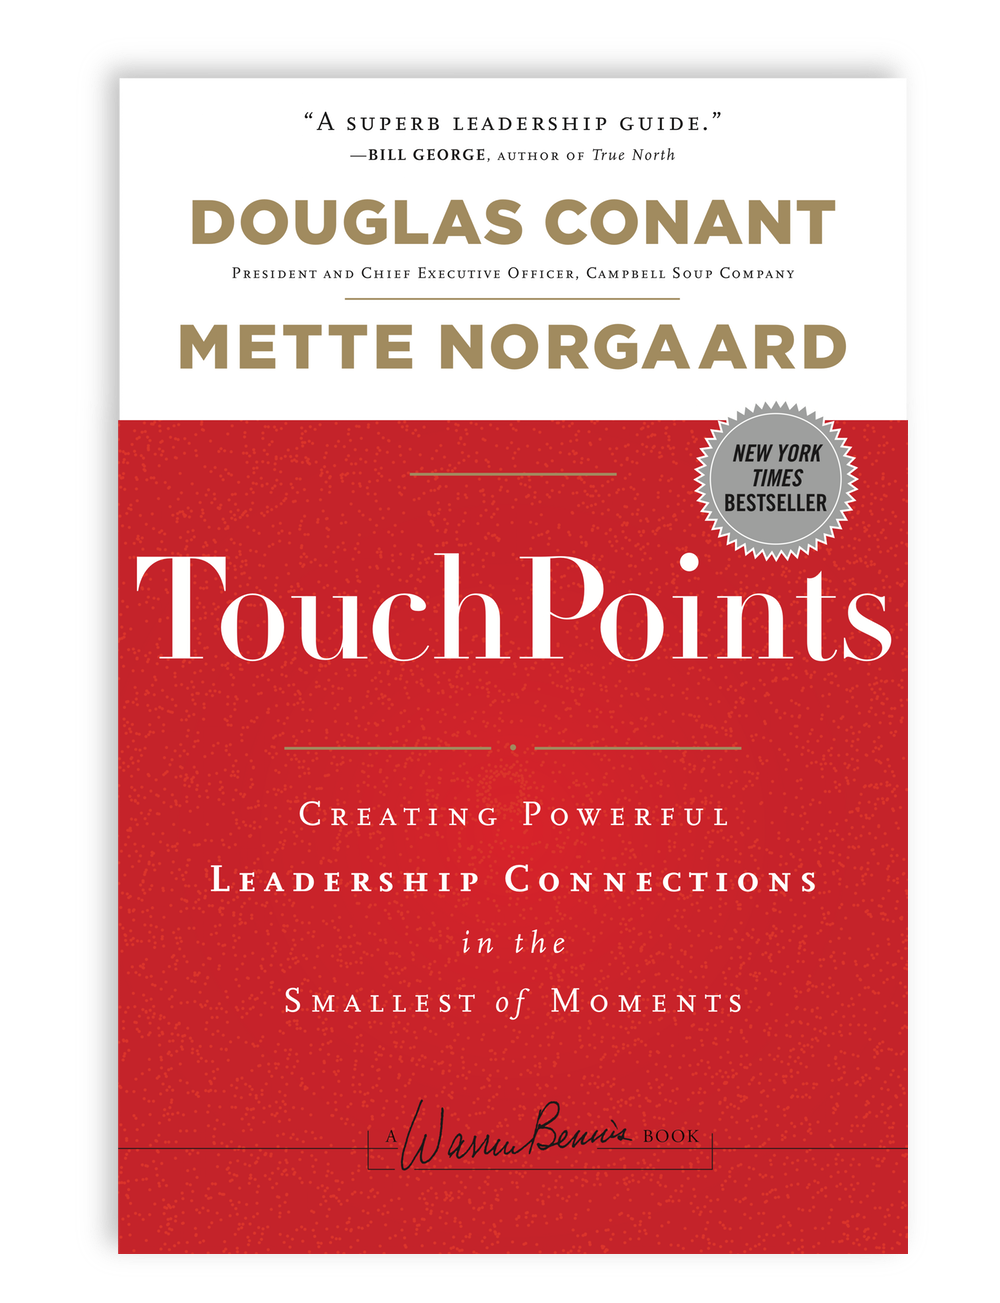 Touchpoints Book Cover